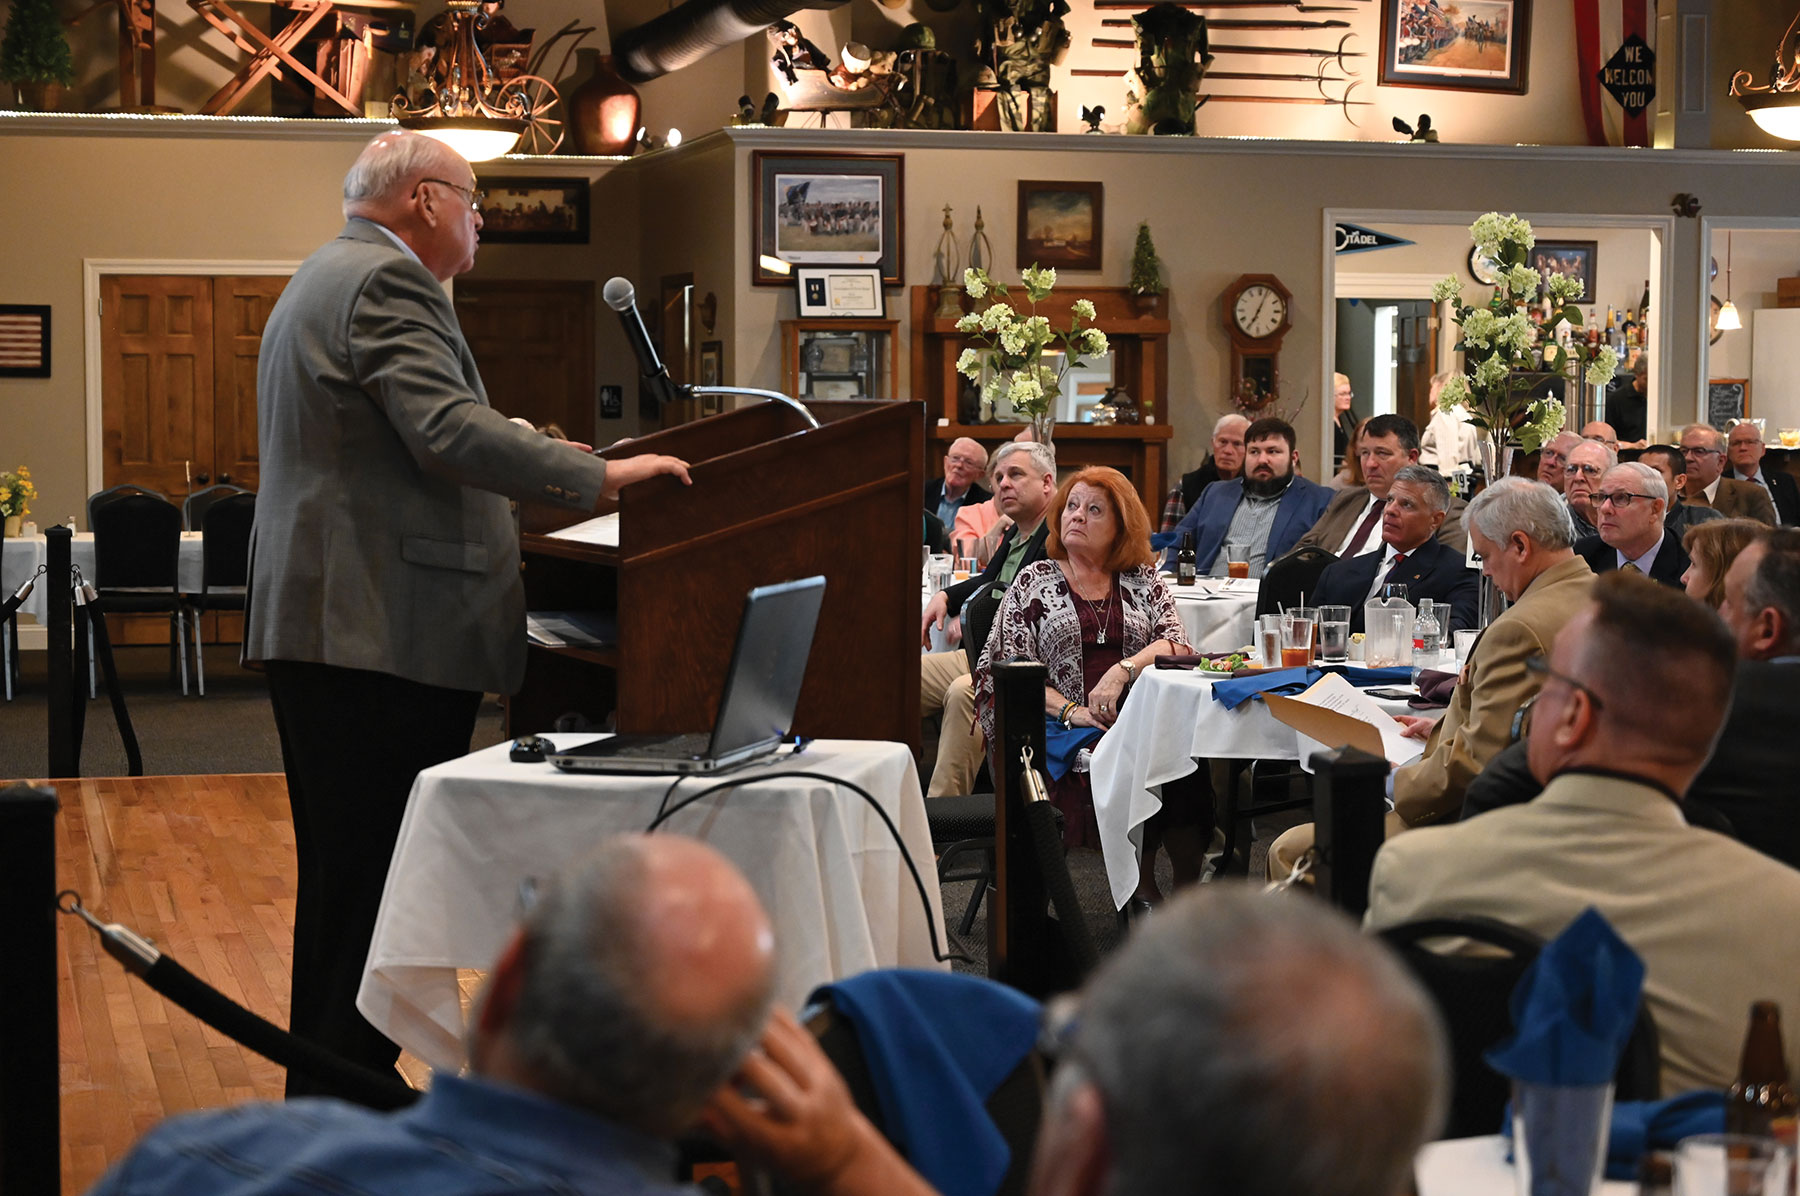 CGSC Professor Emeritus Dr. James H. Willbanks presents the 13th lecture in the CGSC Foundation's Vietnam War Commemoration Lecture Series on May 13, 2021, at June's Northland in downtown Leavenworth, Kansas.